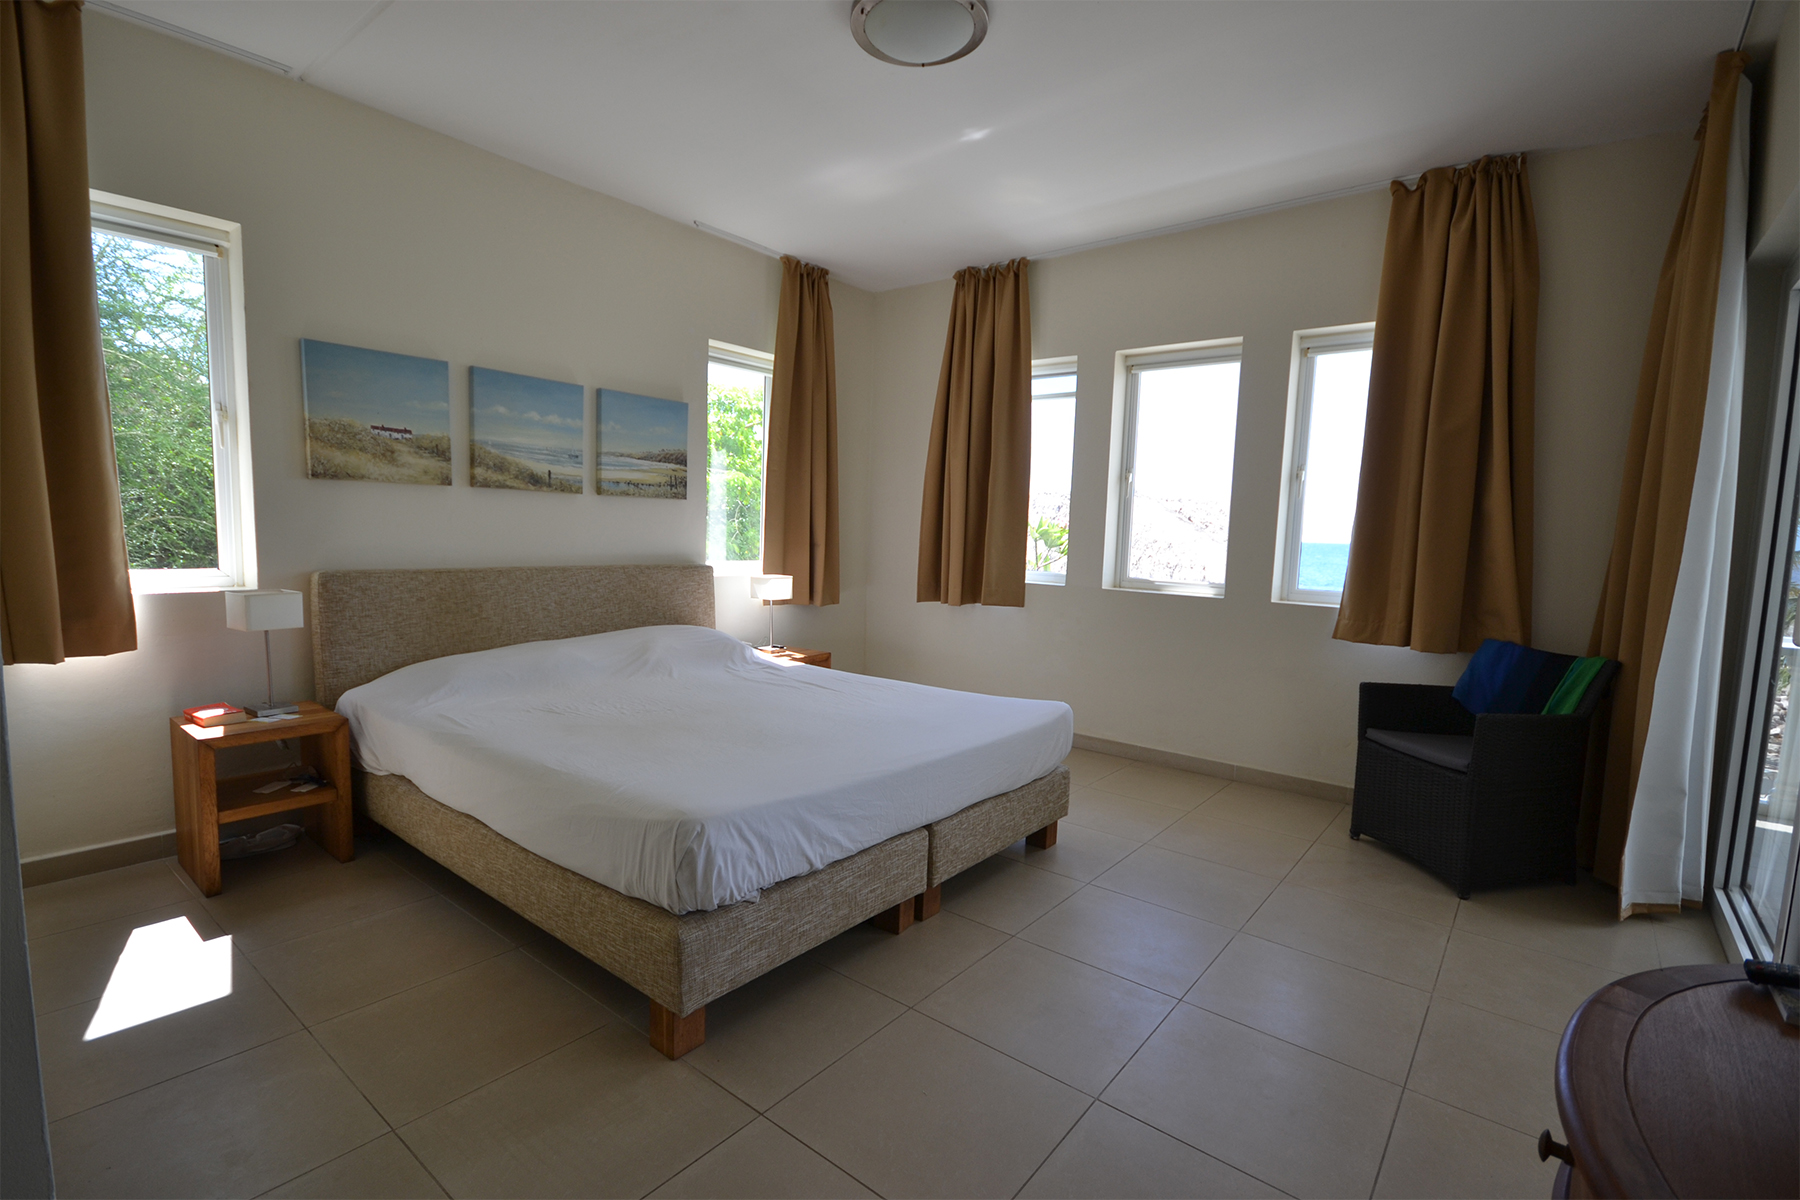 Additional photo for property listing at Blue Bay Emerald Beach Front apartment Other Cities In Curacao, Cities In Curacao Curacao